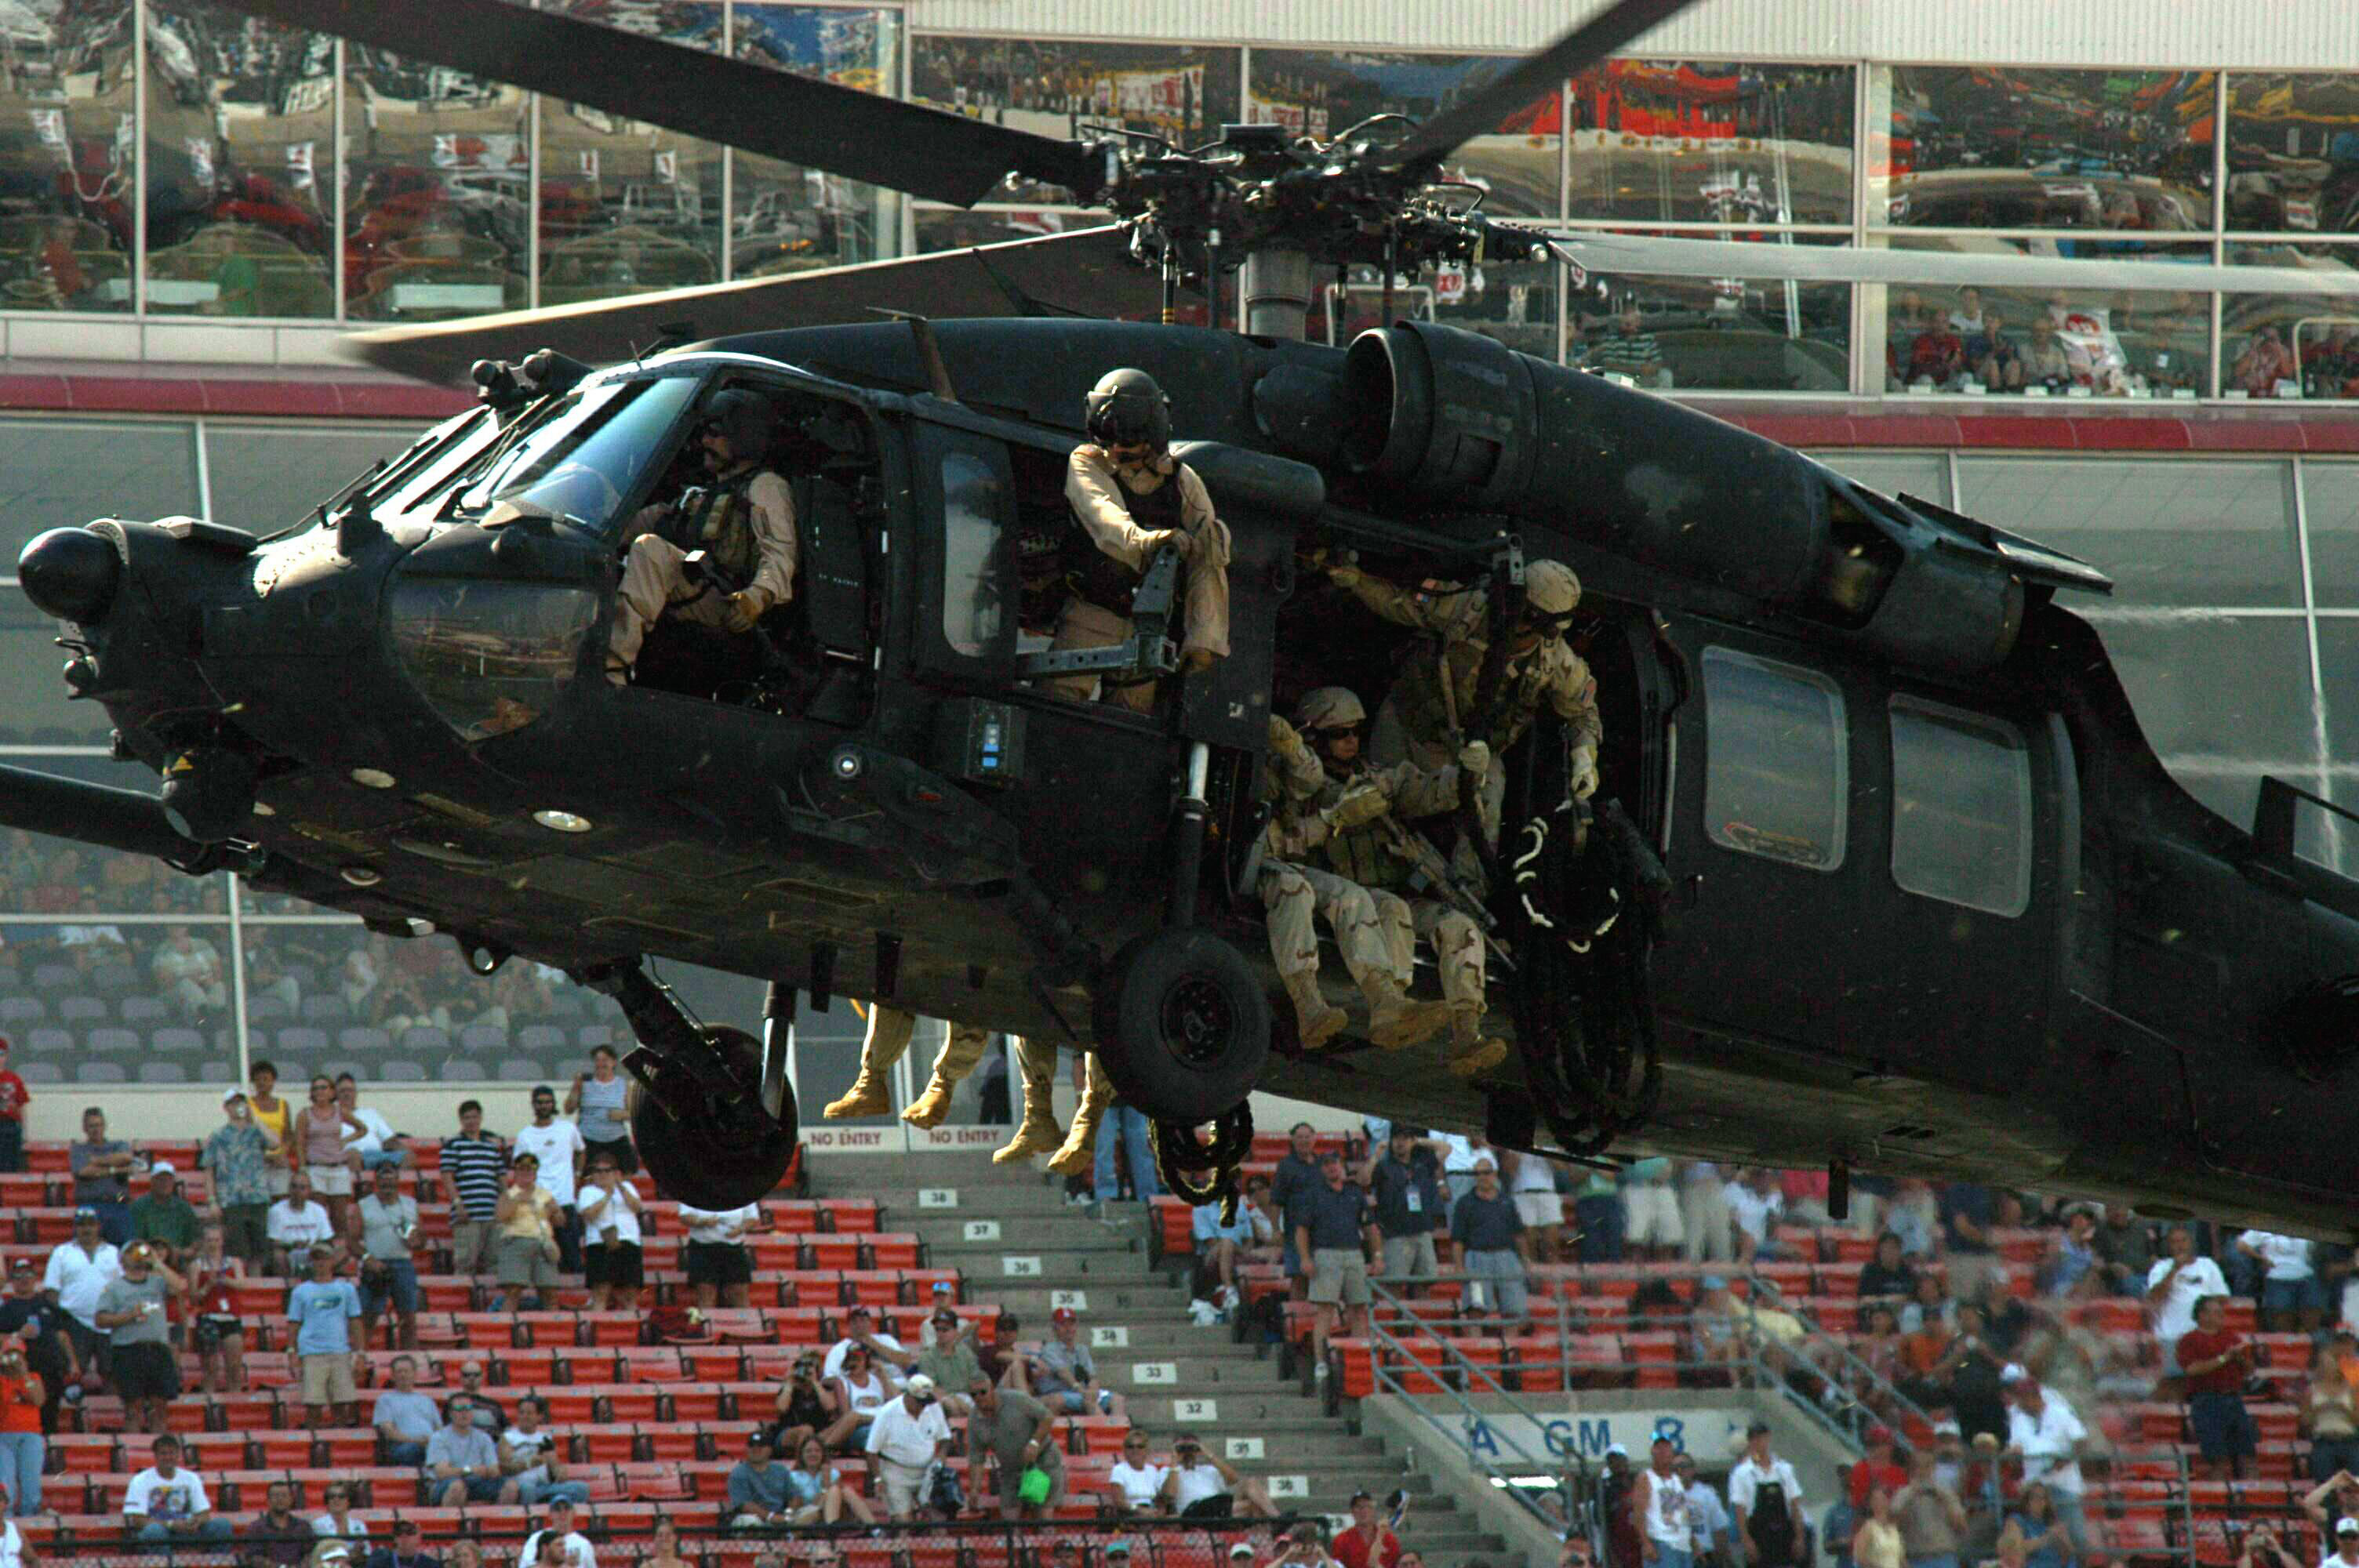 nightstalker helicopter with Mh 60k Special Forces on Brave Mission Earns Eight Night Stalkers The Distinguished Flying Cross likewise Toys furthermore Army Helicopter Hard Landing Kills Soldier In Georgia likewise BBI Elite MH6 Little Bird Night Stalker Helicopter 118 MIB furthermore Stealth Black Hawk.